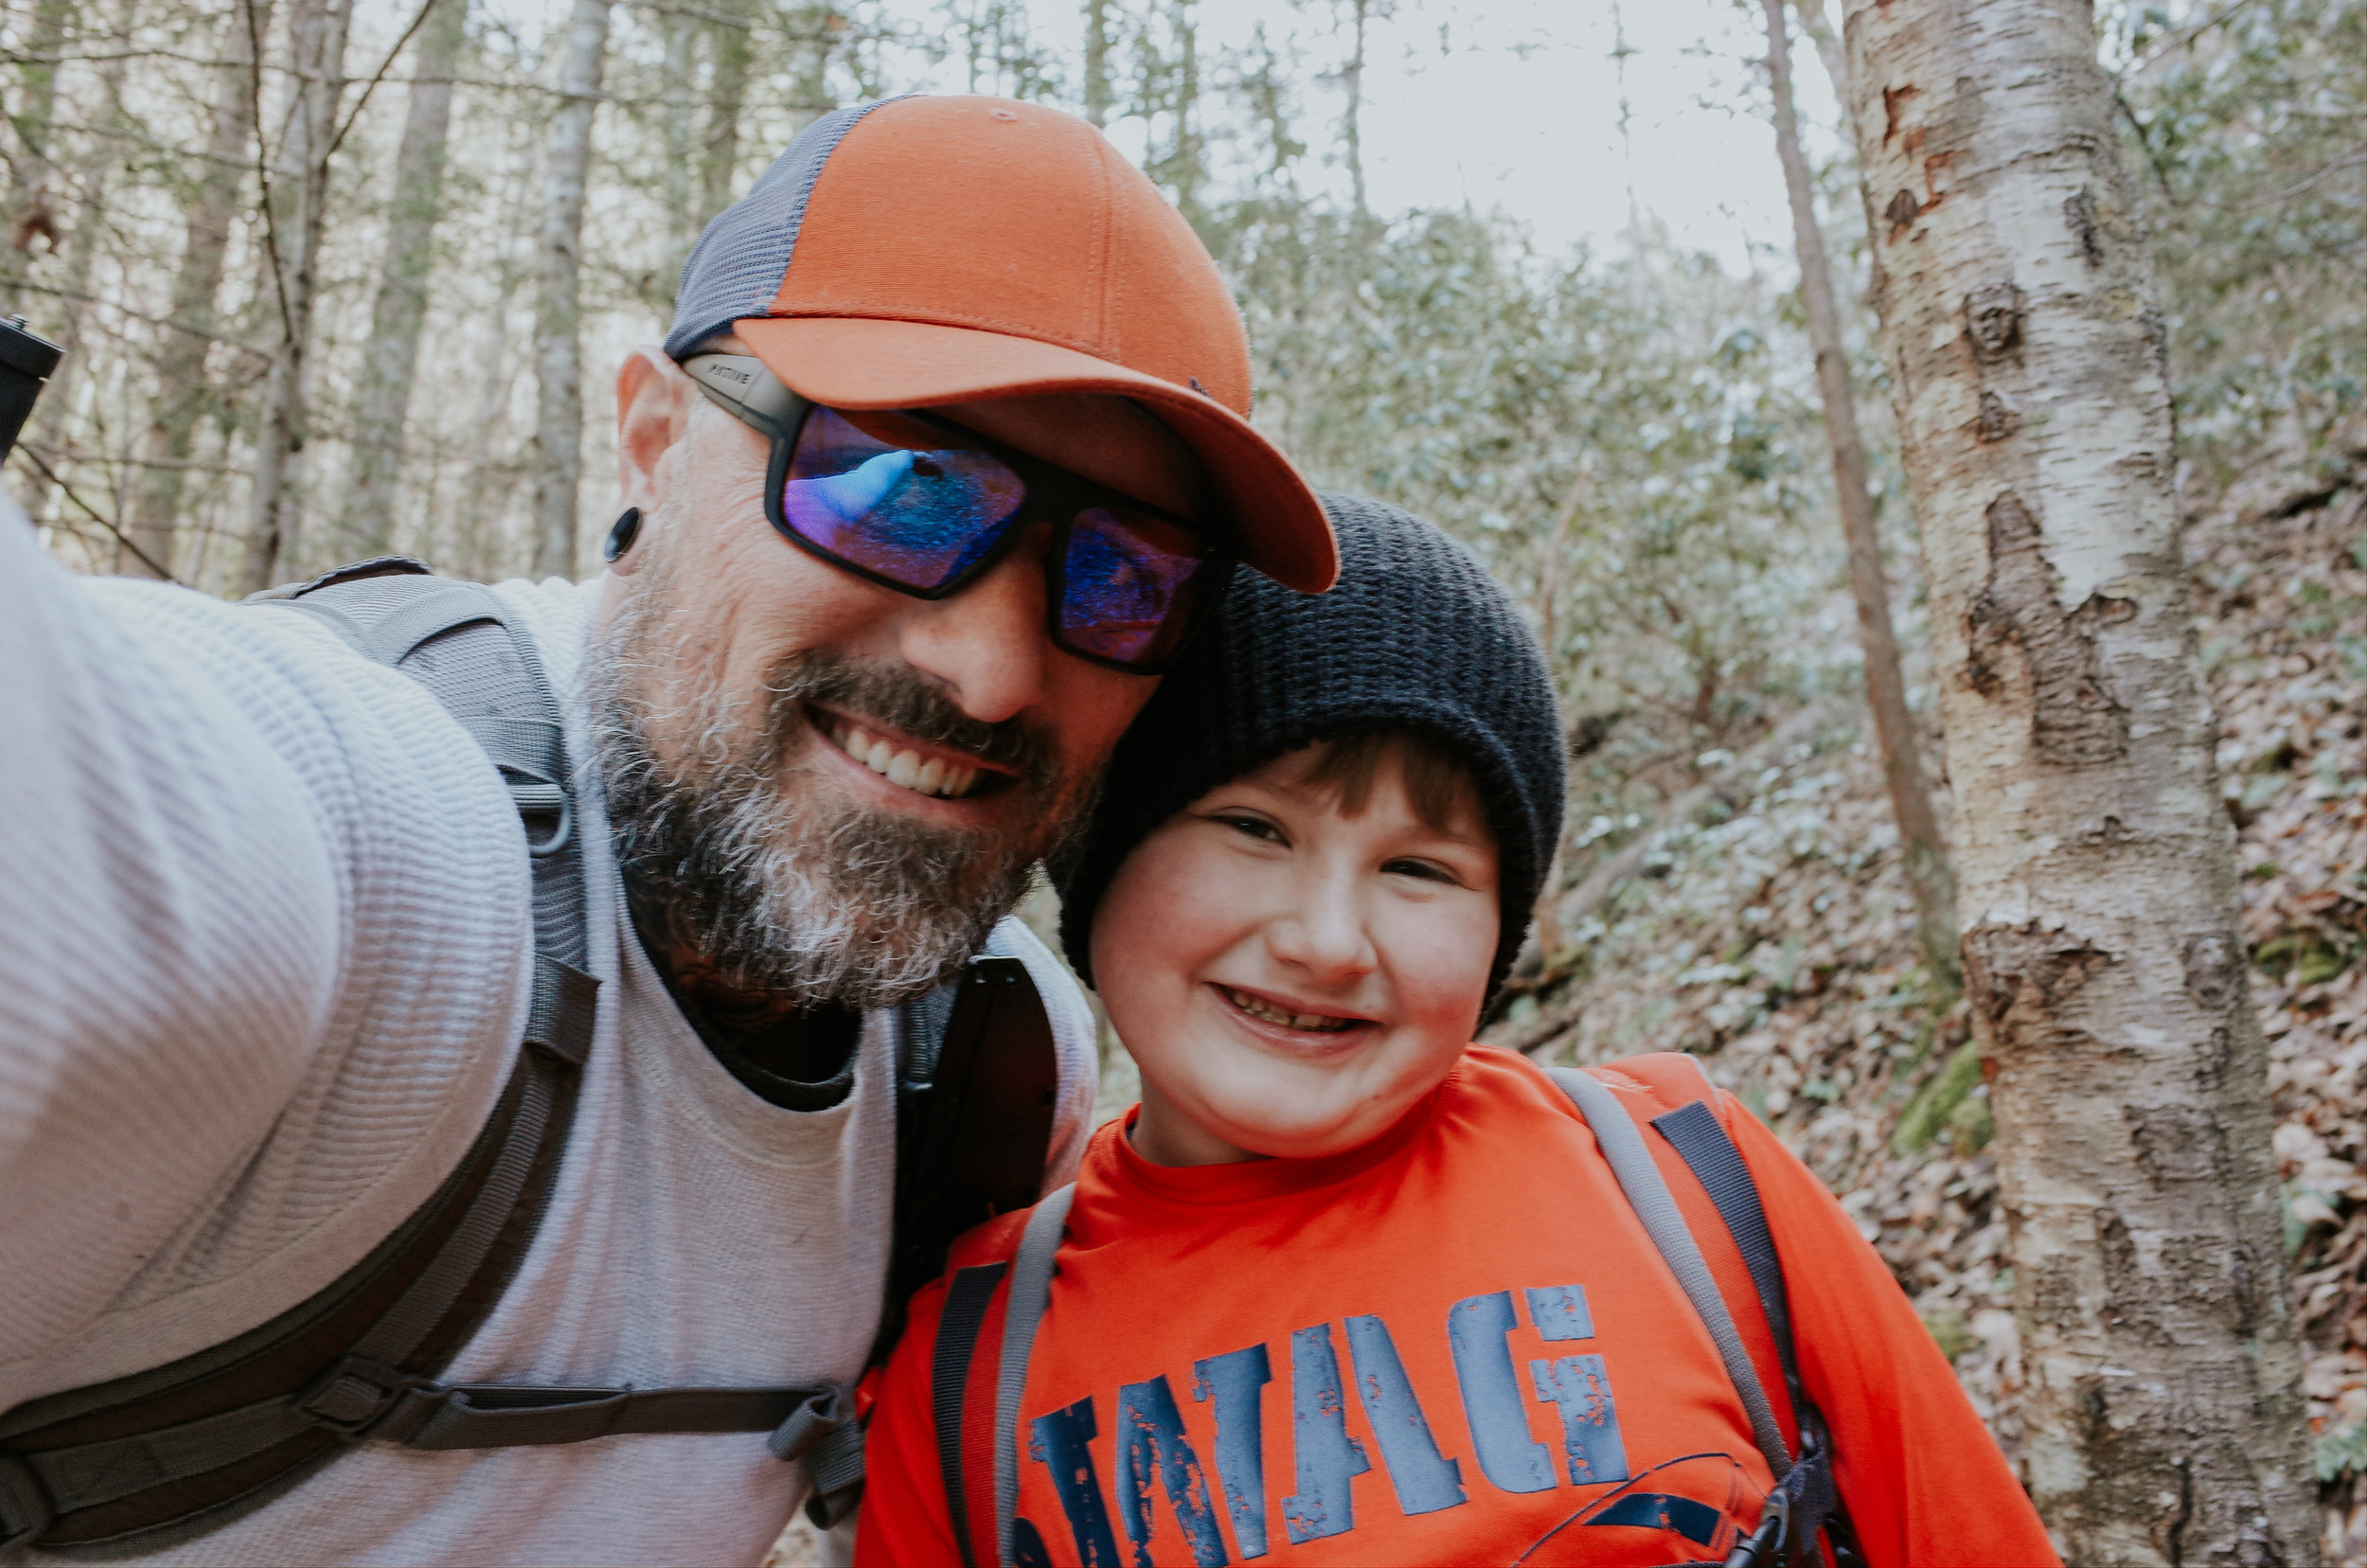 A rare selfie with my hiking buddy. Hes growing up to quickly.